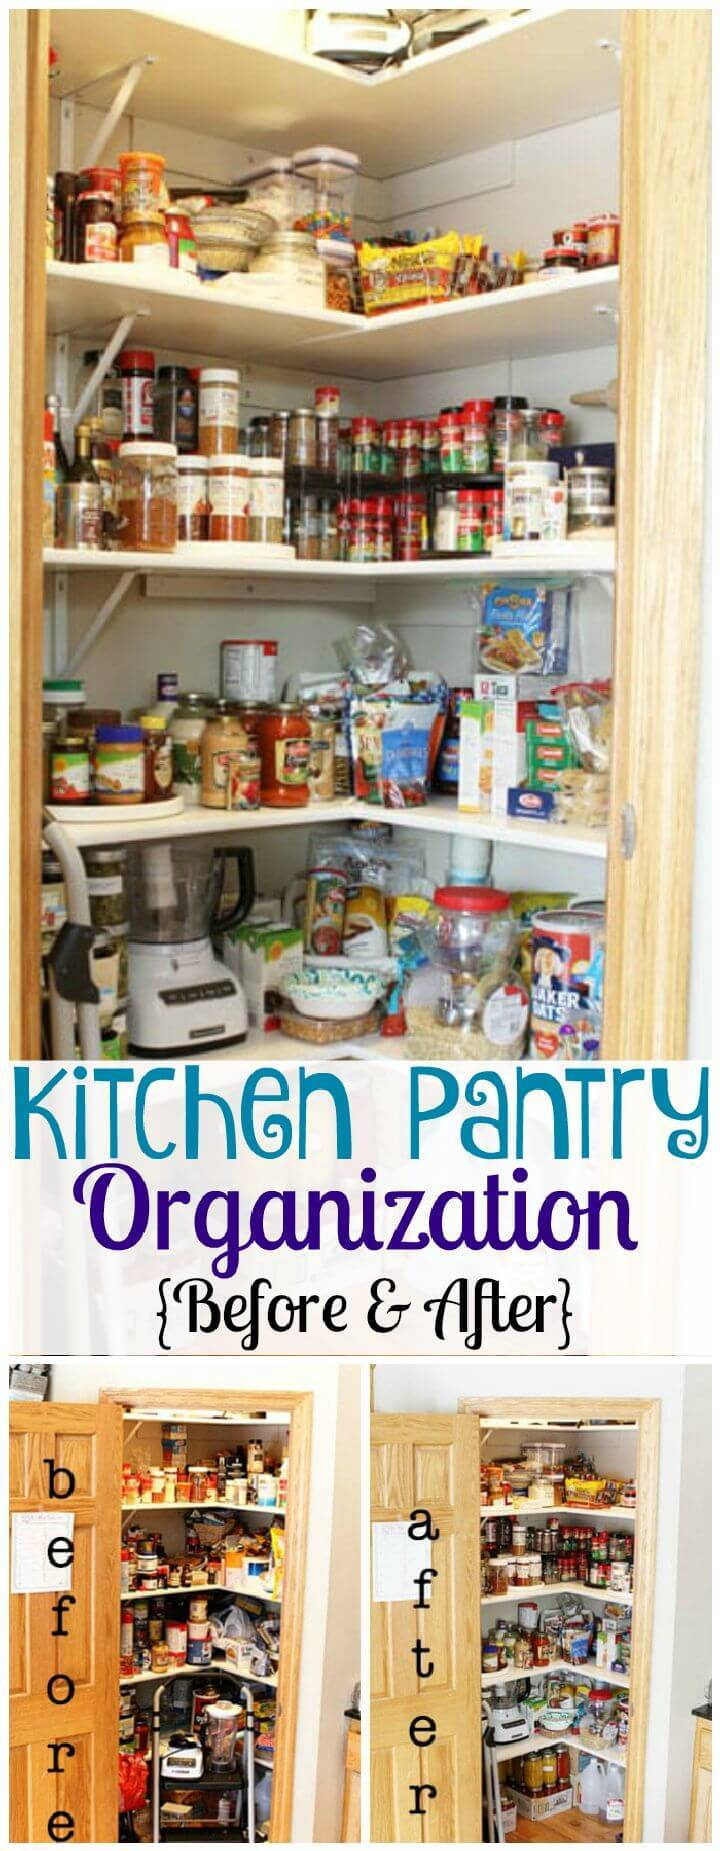 Kitchen Pantry Organization Before & After